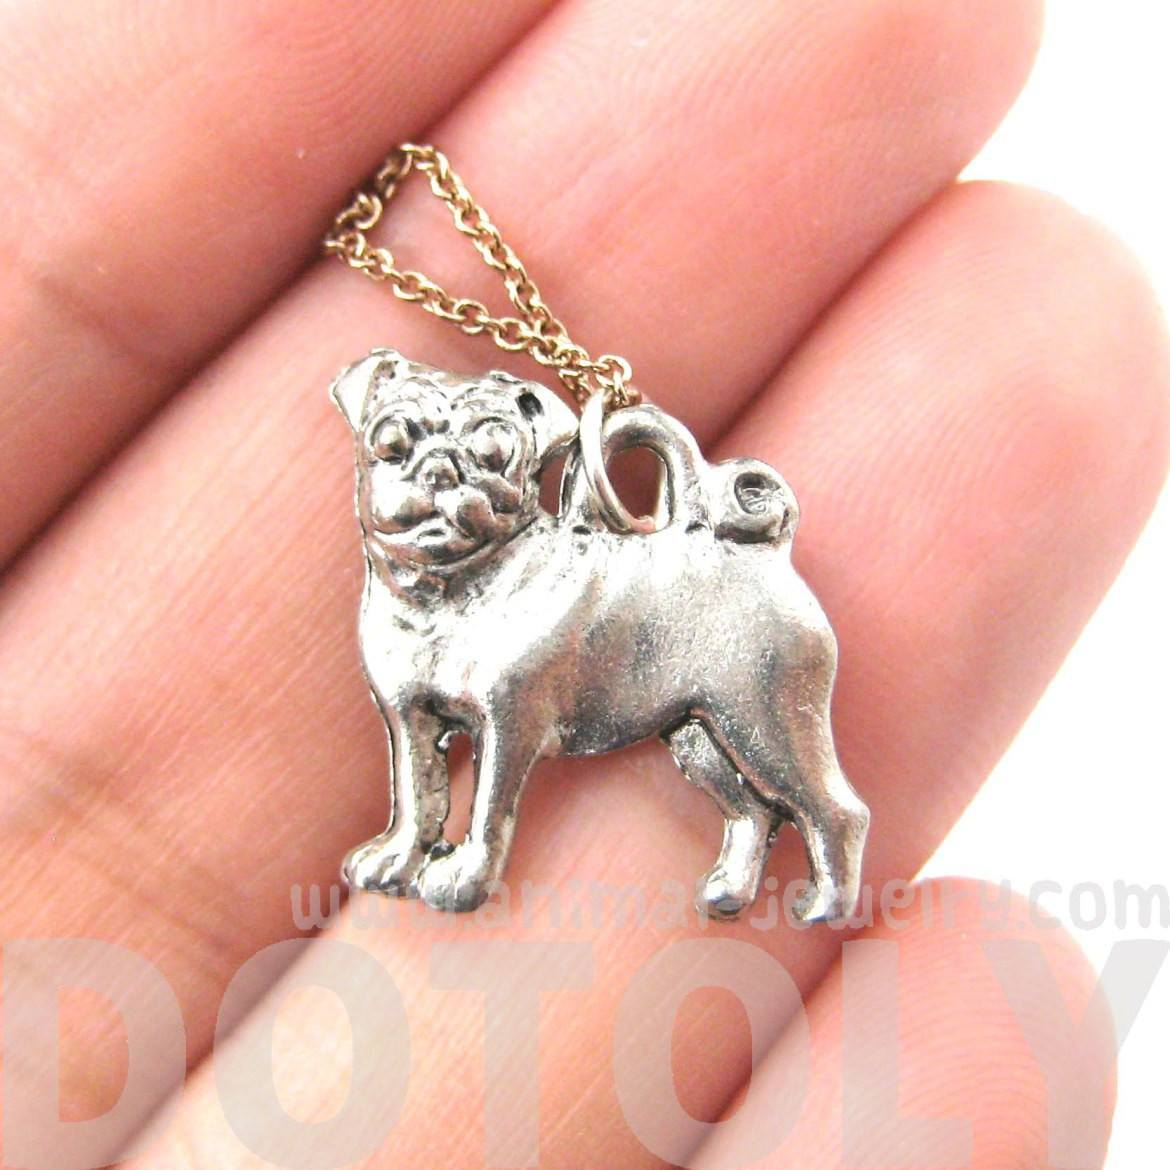 Detailed Pug Puppy Dog Shaped Charm Necklace in Silver | MADE IN USA